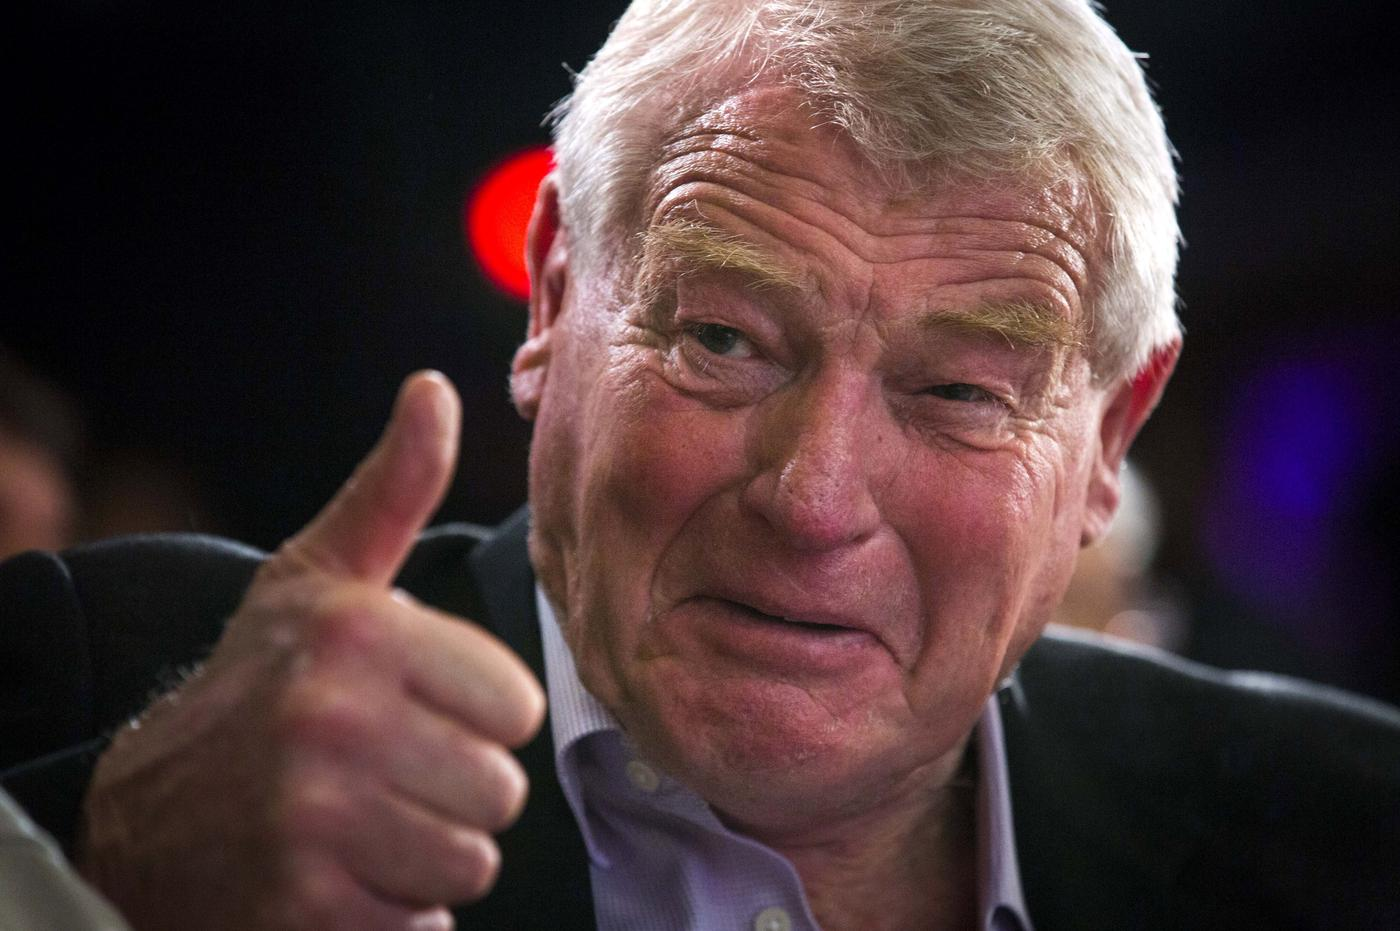 'If this exit poll is correct I'll eat my hat': Paddy Ashdown rejects projected Lib Dem losses